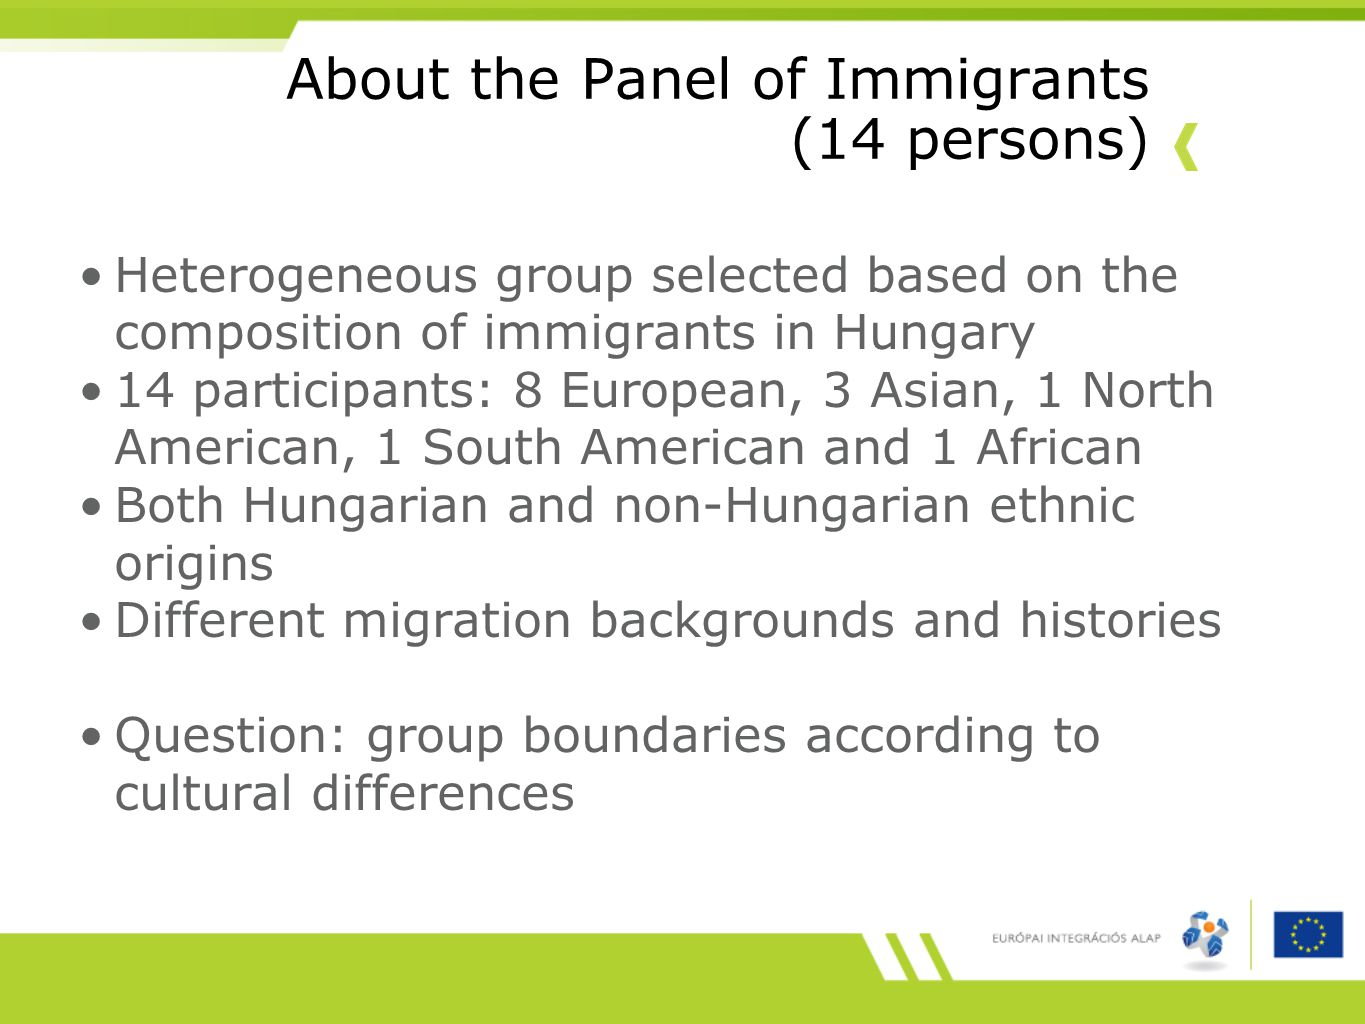 About the Panel of Immigrants (14 persons) Heterogeneous group selected based on the composition of immigrants in Hungary 14 participants: 8 European, 3 Asian, 1 North American, 1 South American and 1 African Both Hungarian and non-Hungarian ethnic origins Different migration backgrounds and histories Question: group boundaries according to cultural differences